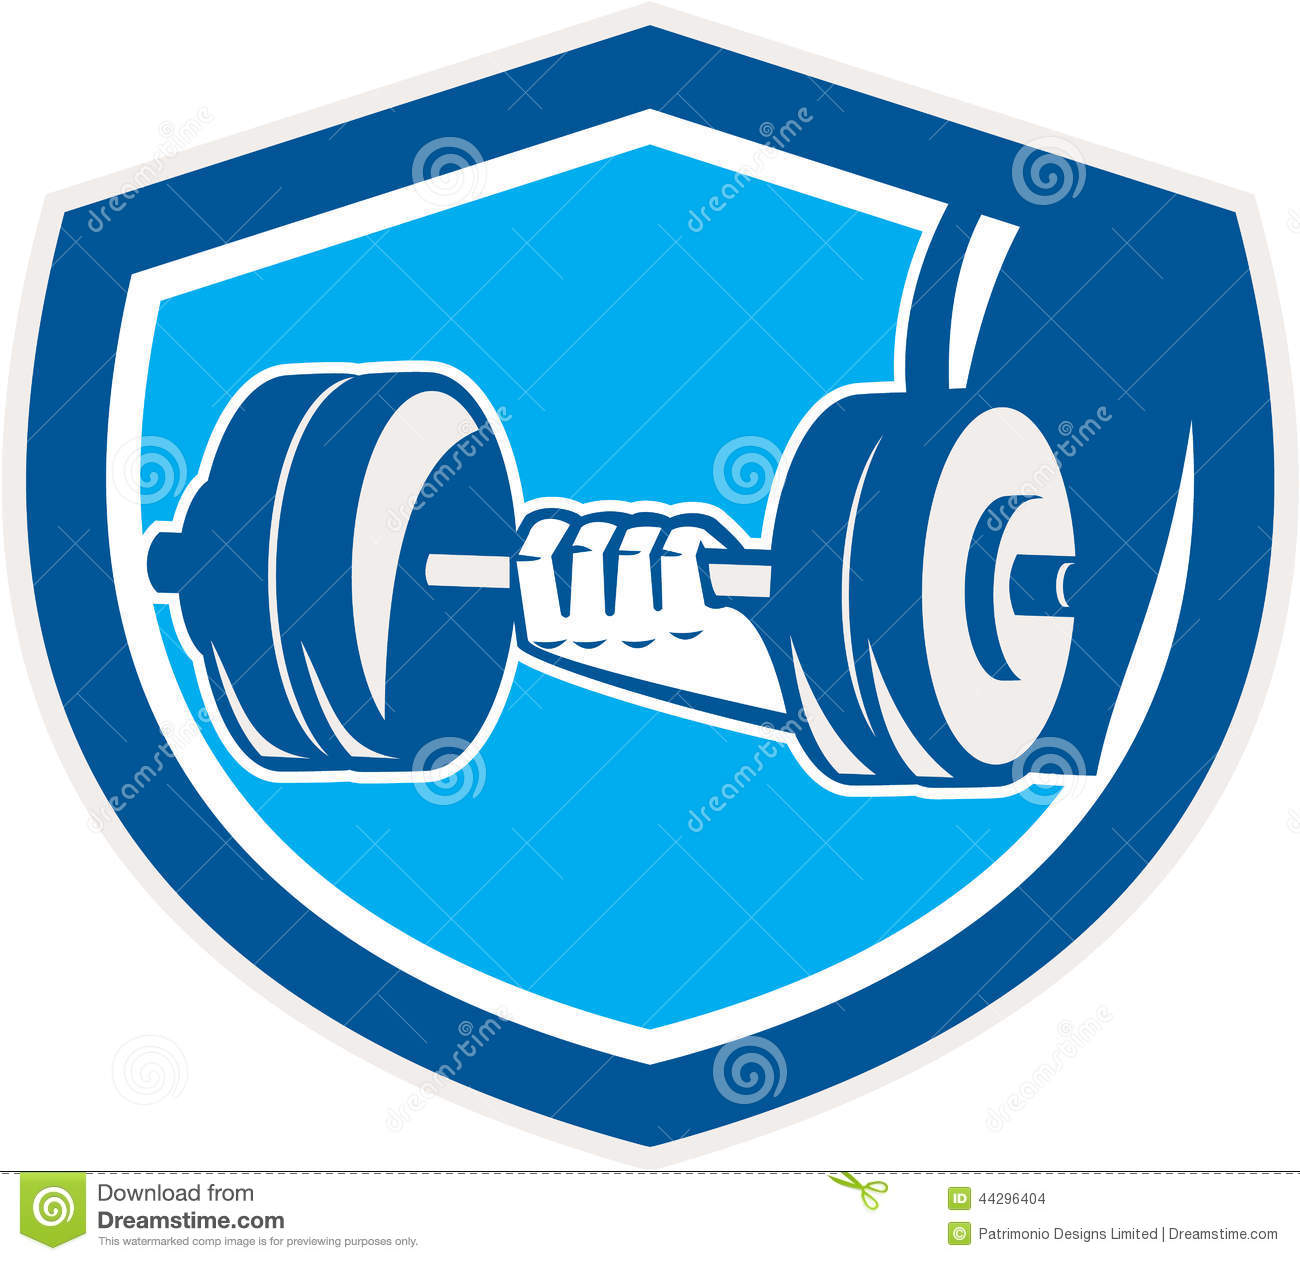 Hand Lifting Dumbbell Shield Retro Stock Vector - Illustration of